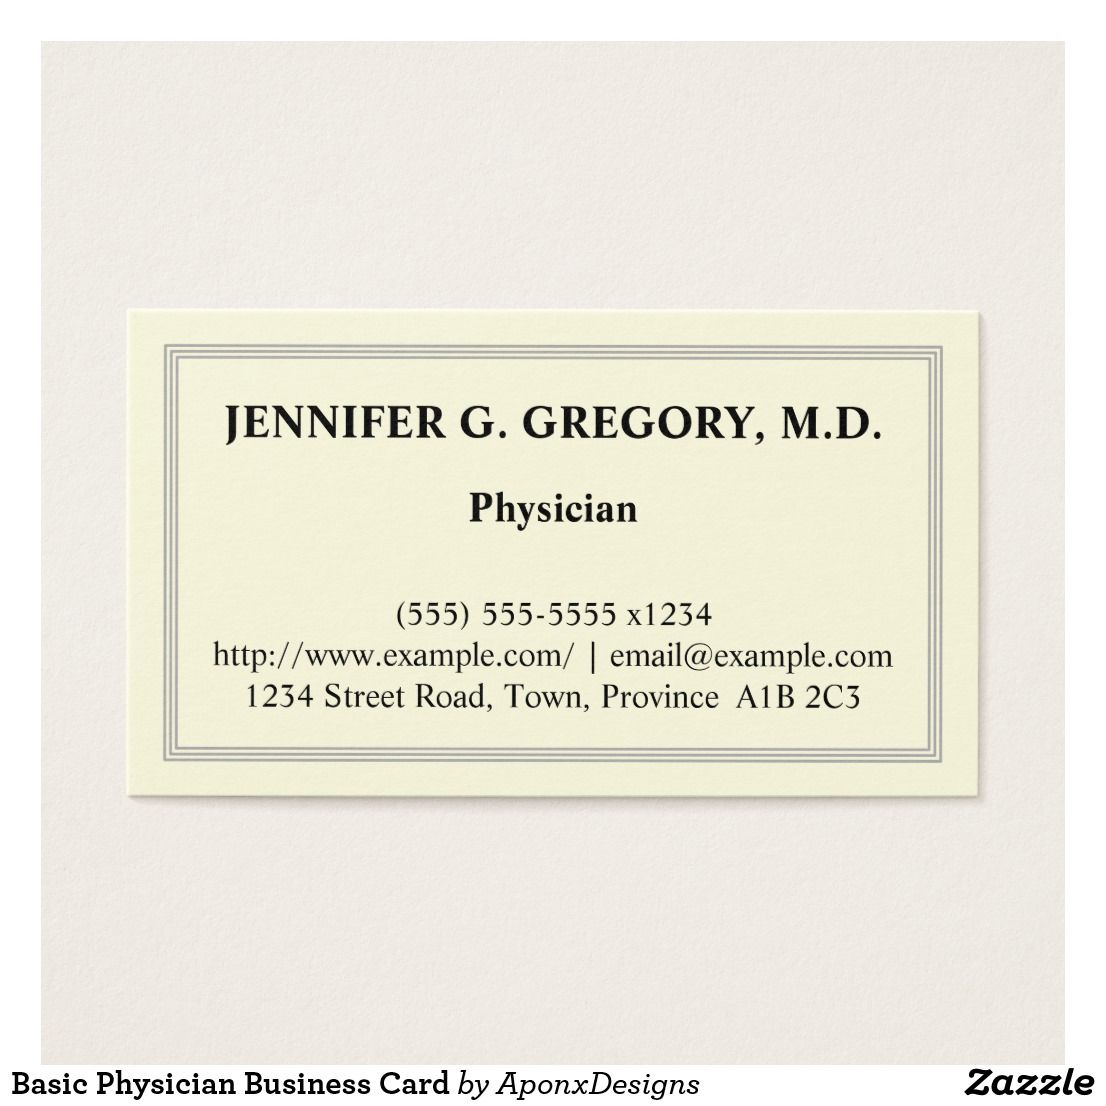 Basic Physician Business Card | Business cards